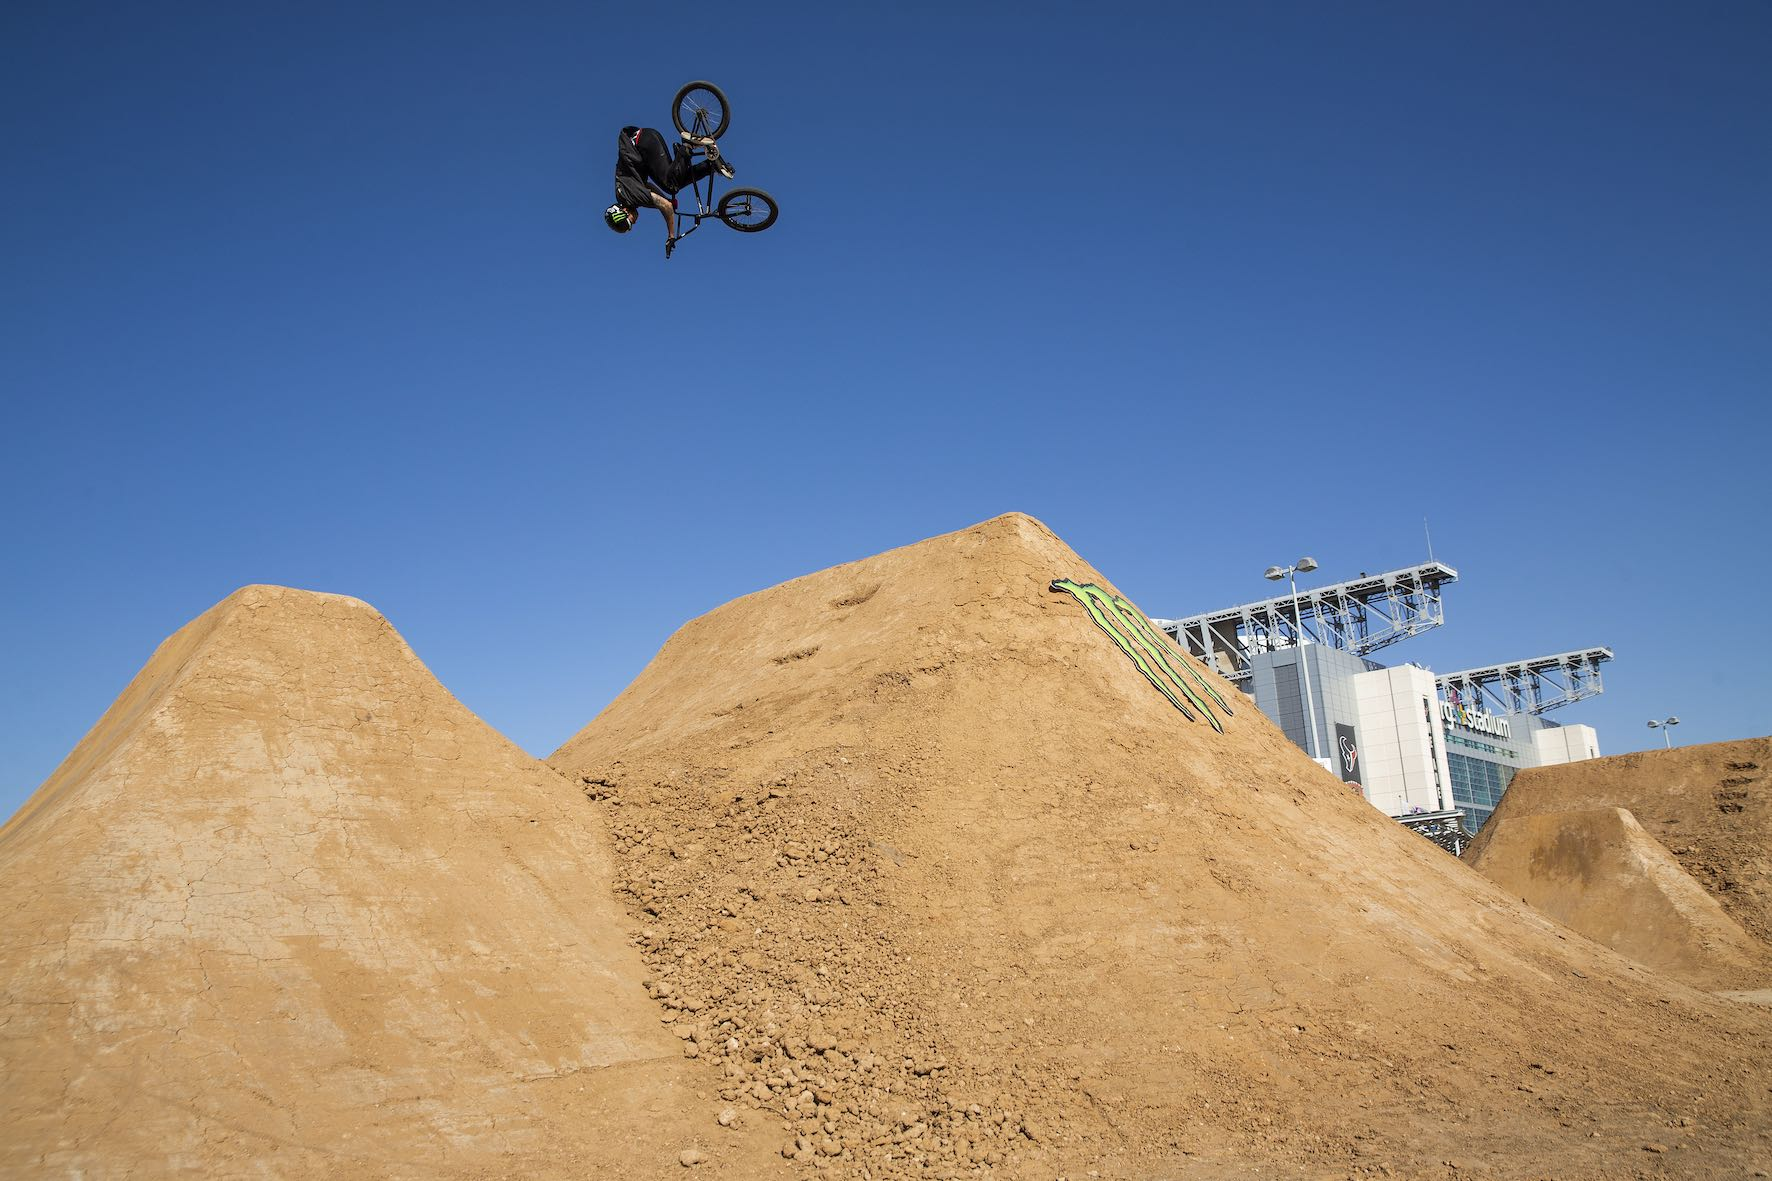 Pat Casey riding in the Monster Energy BMX Triple Challenge